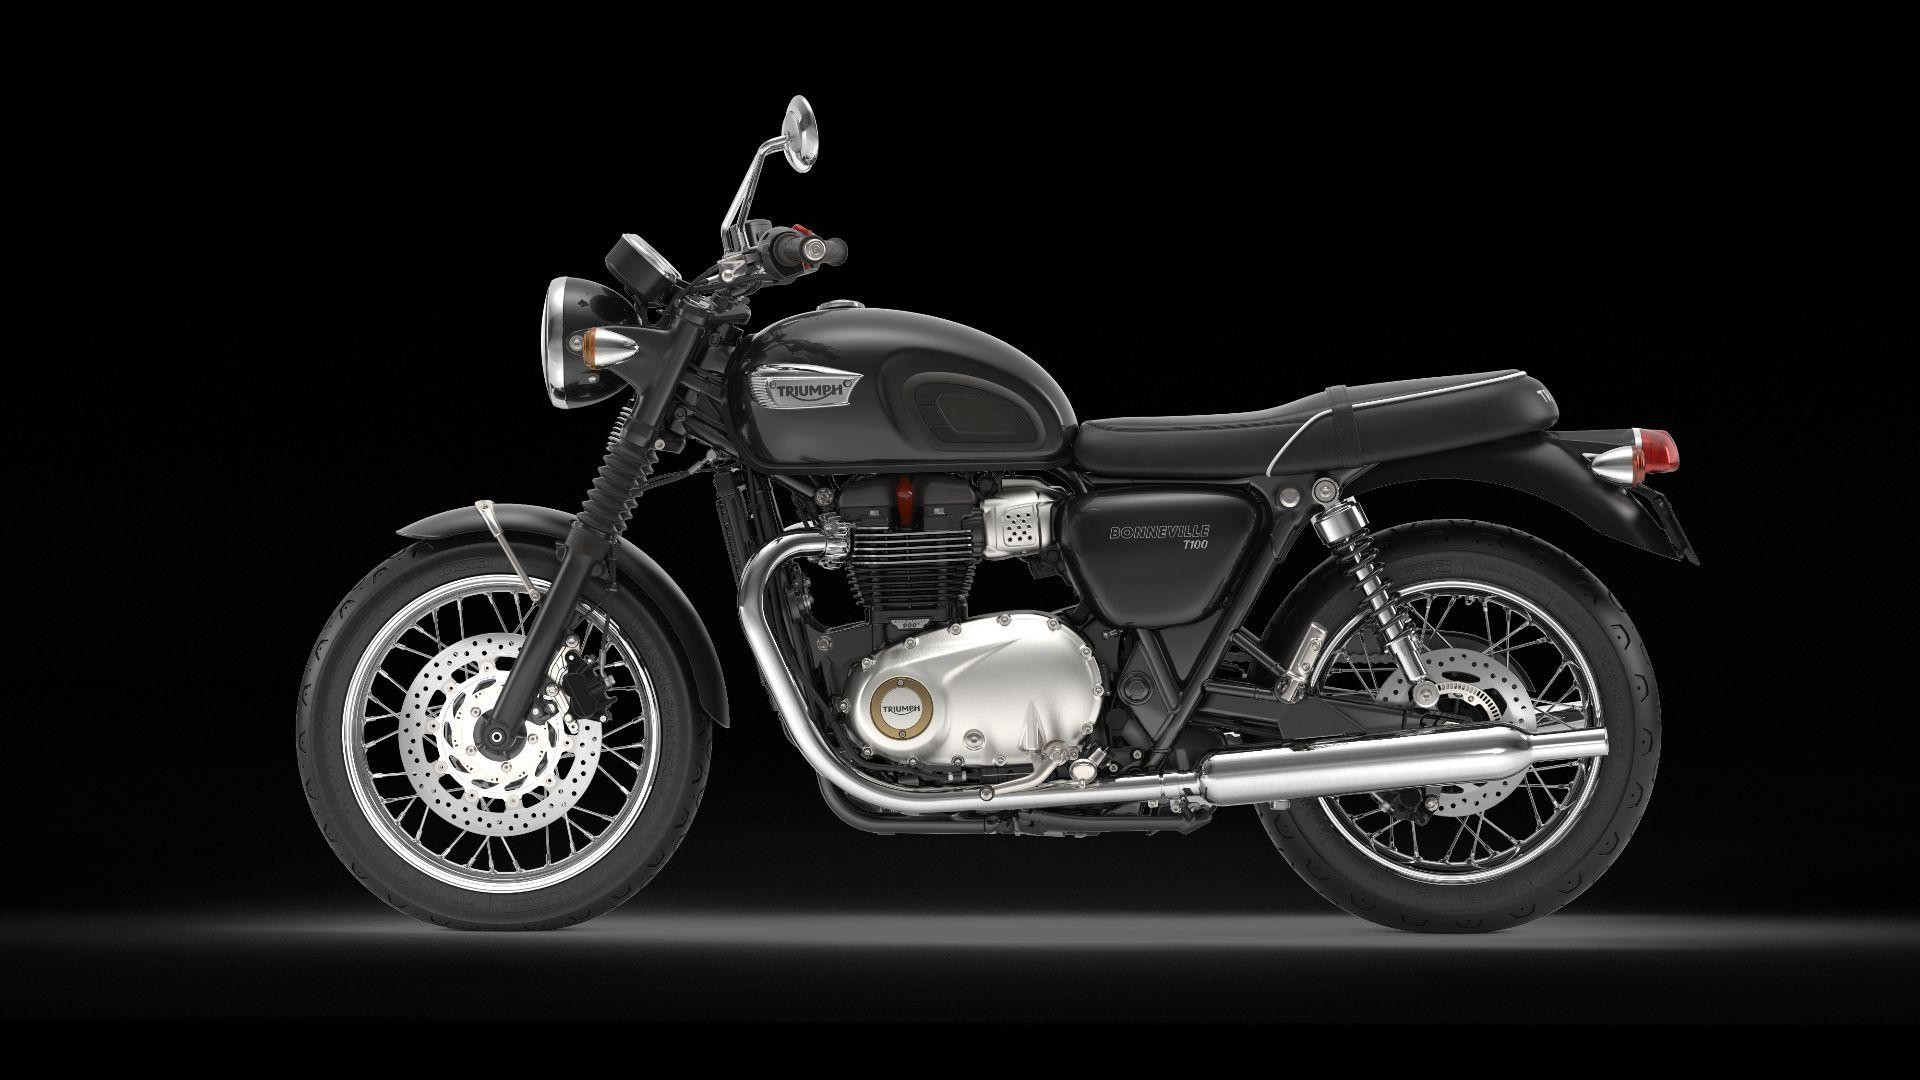 Buy Motorbike New Vehiclebike Triumph Bonneville T100 900 Abs 9432